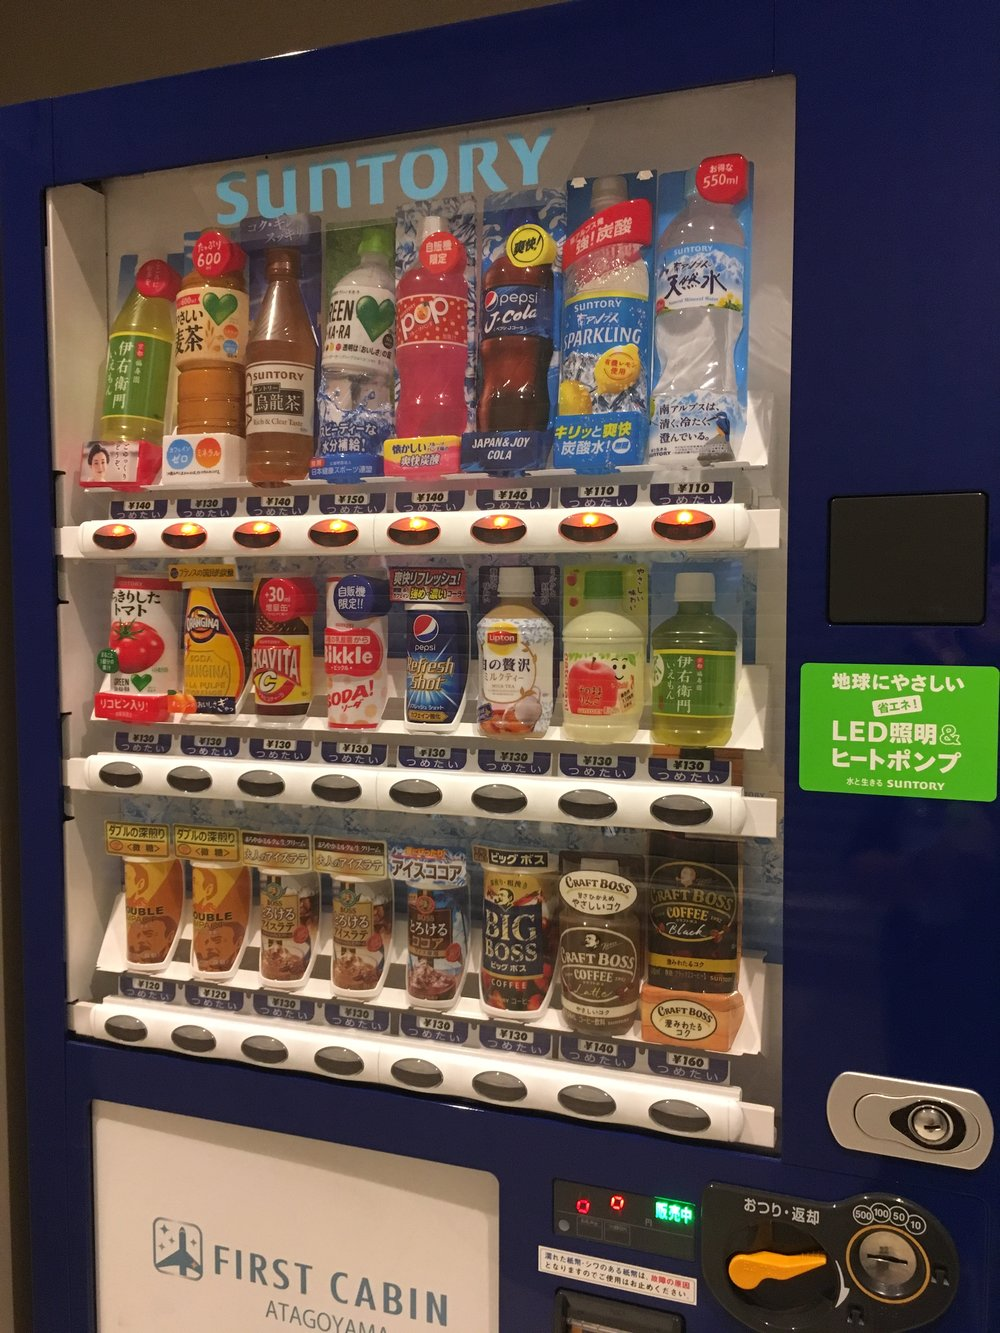 There was a variety of drinks in this vending machine.